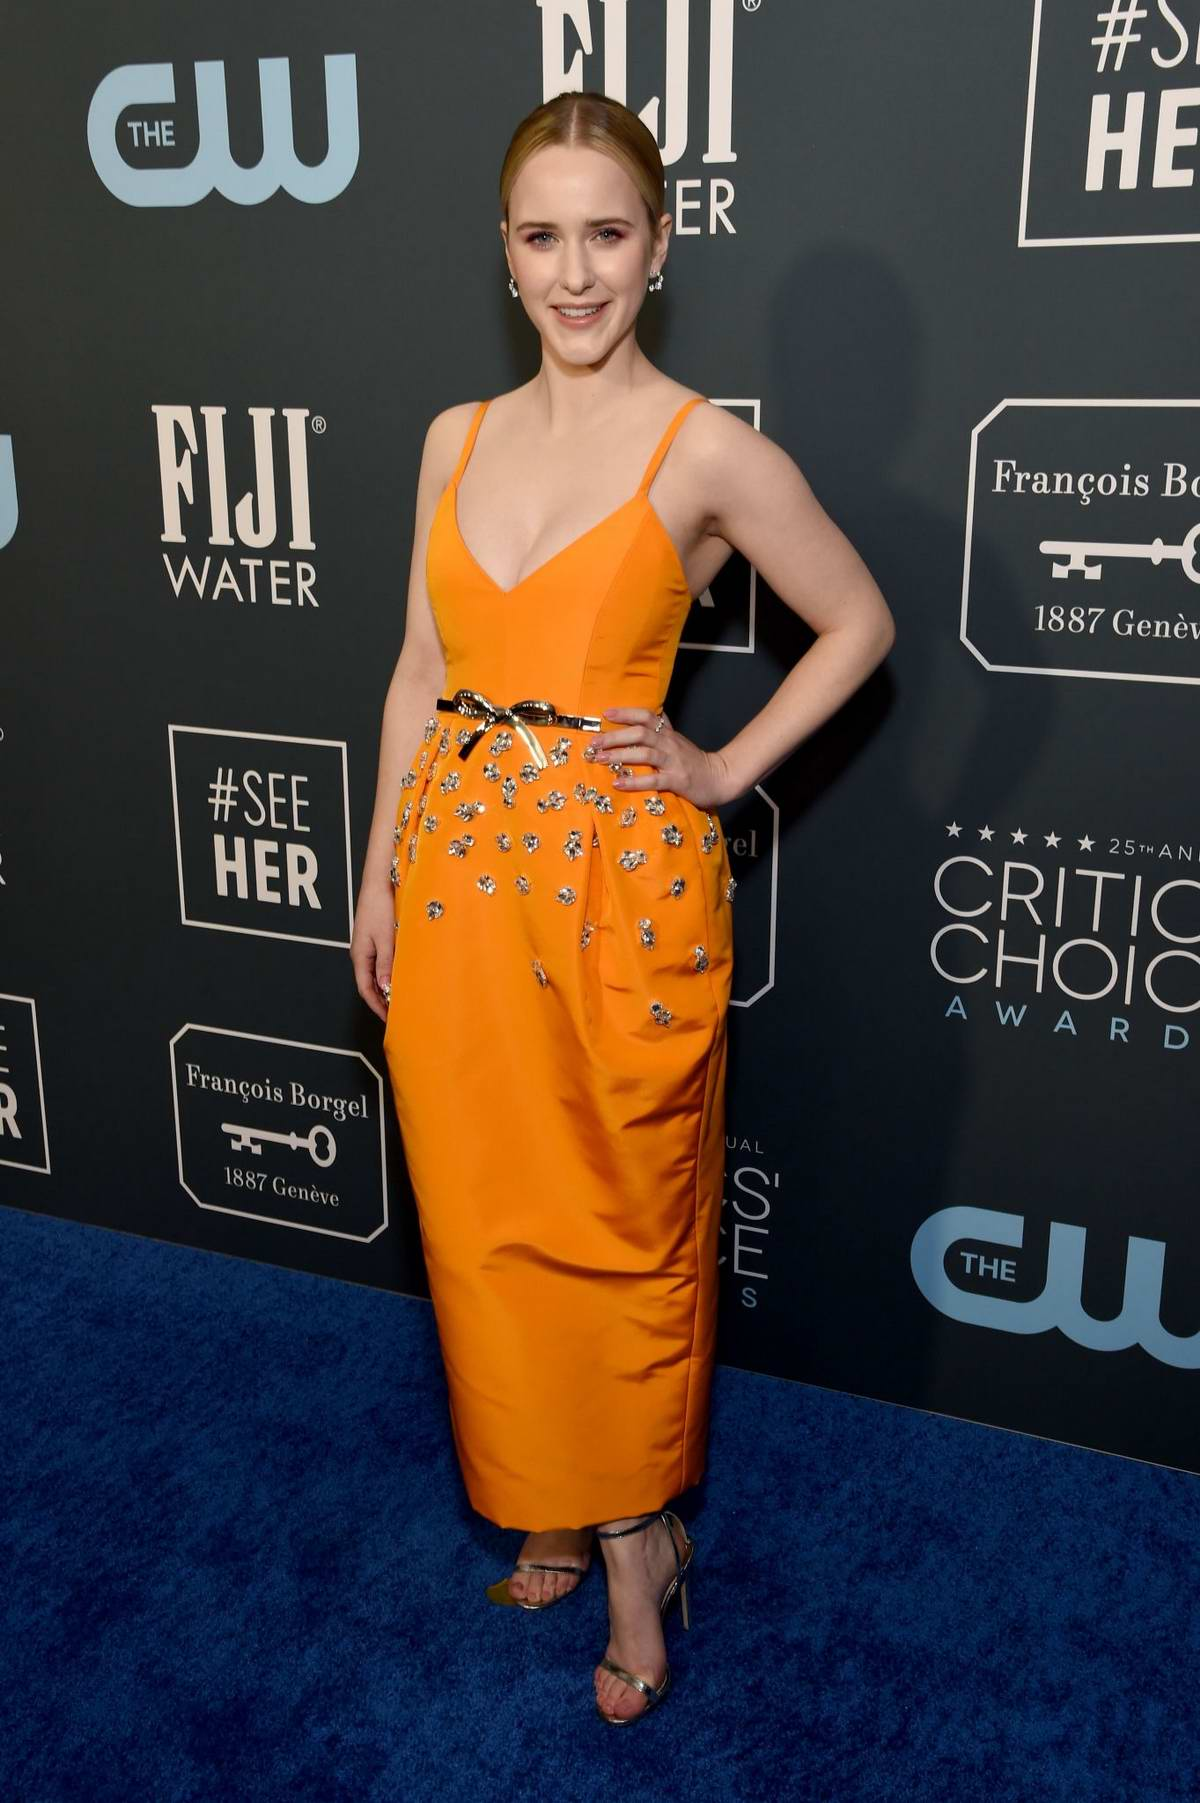 Rachel Brosnahan attends the 25th Annual Critics' Choice Awards at Barker Hangar in Santa Monica, California